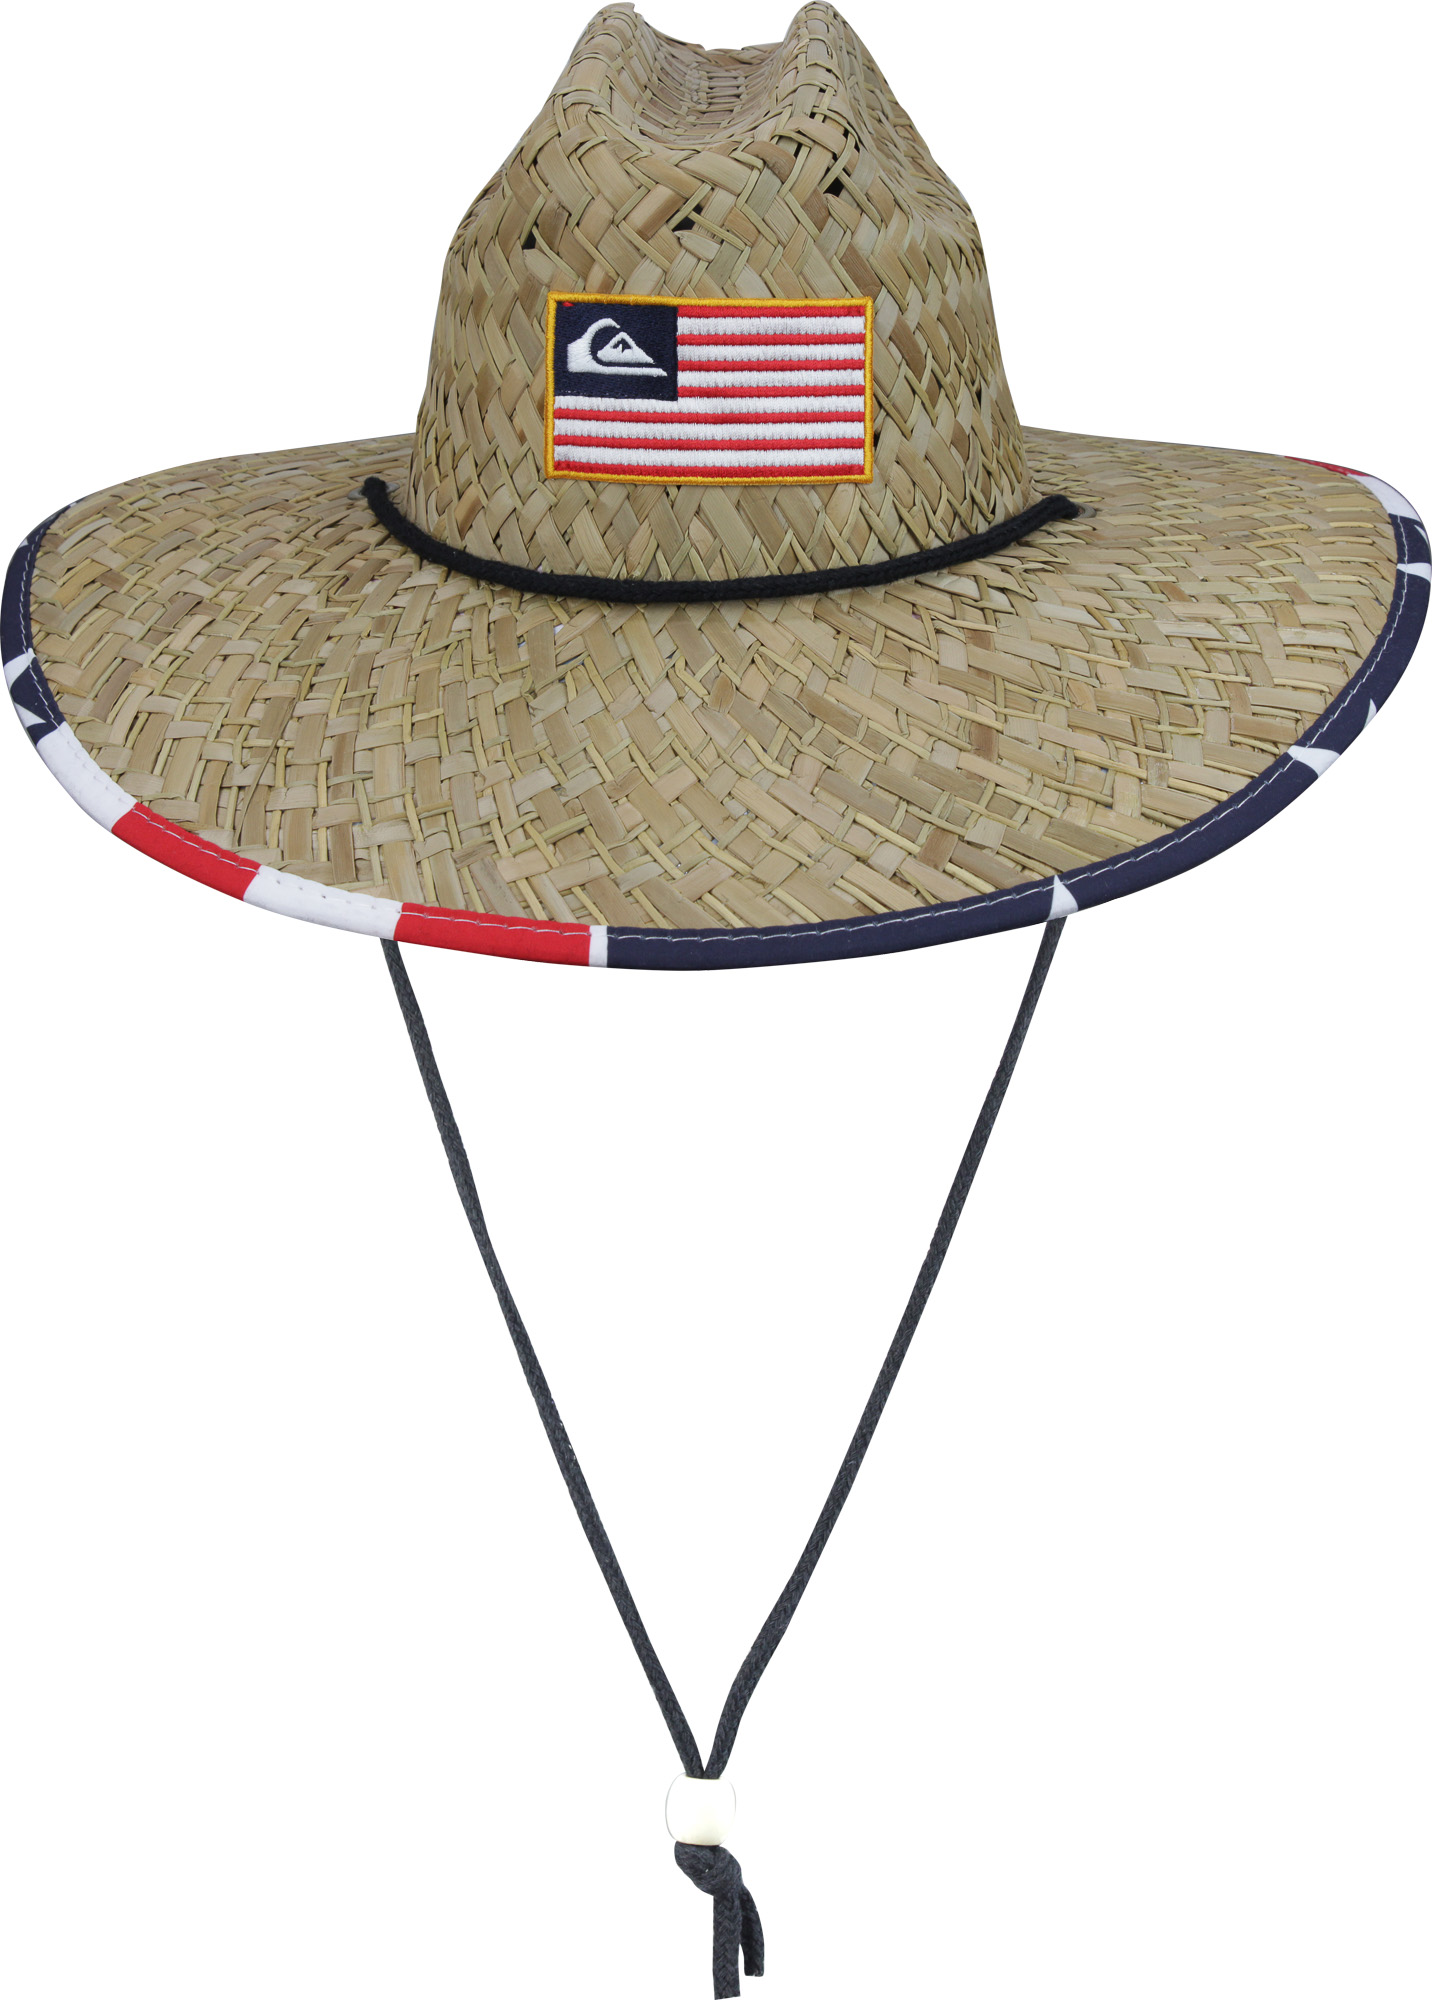 bf1864eba44 Details about Quiksilver Mens Outsider Merica USA Wide Brim Sun Hat - Straw